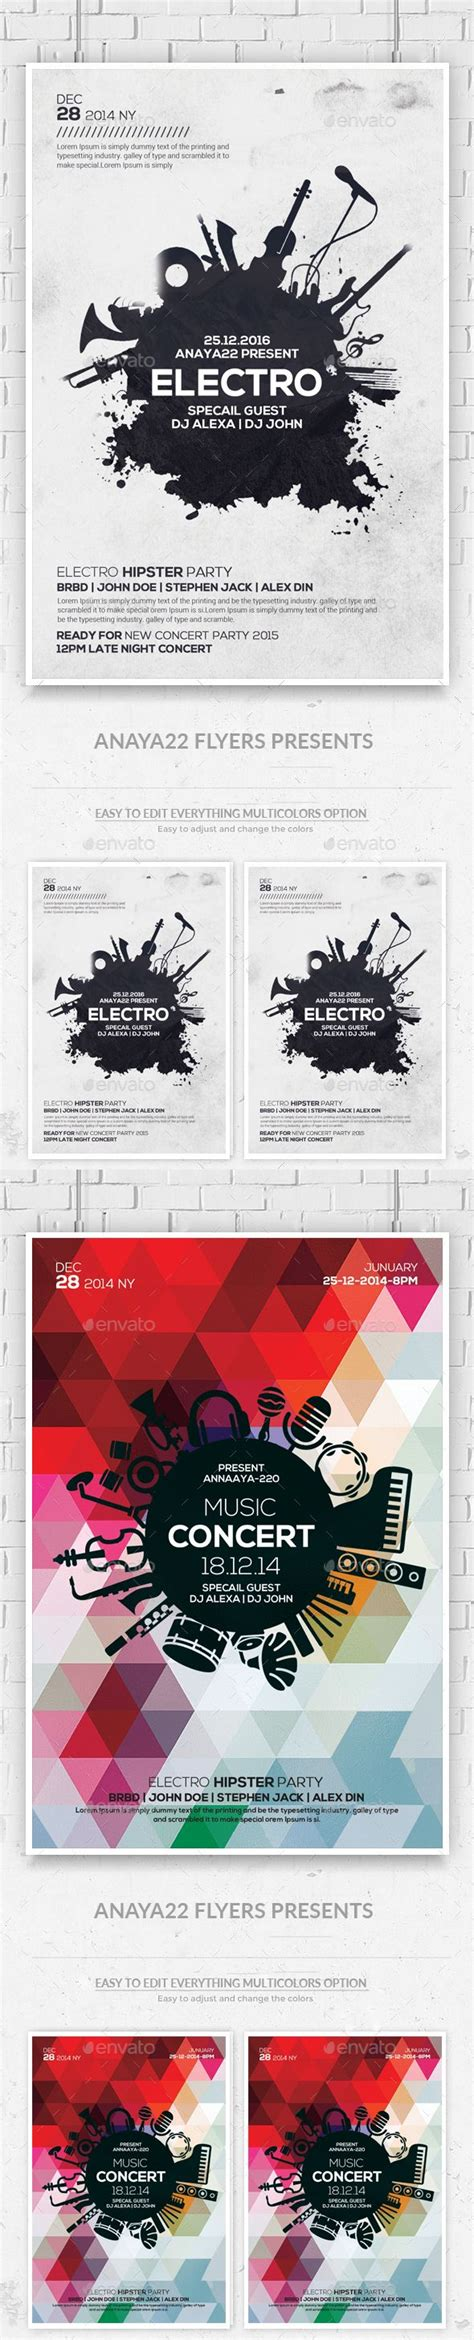 Download Graphicriver Electro Dj Party Flyer Template 6502526 by Electro Music Flyers Templates Psd Design Download Http